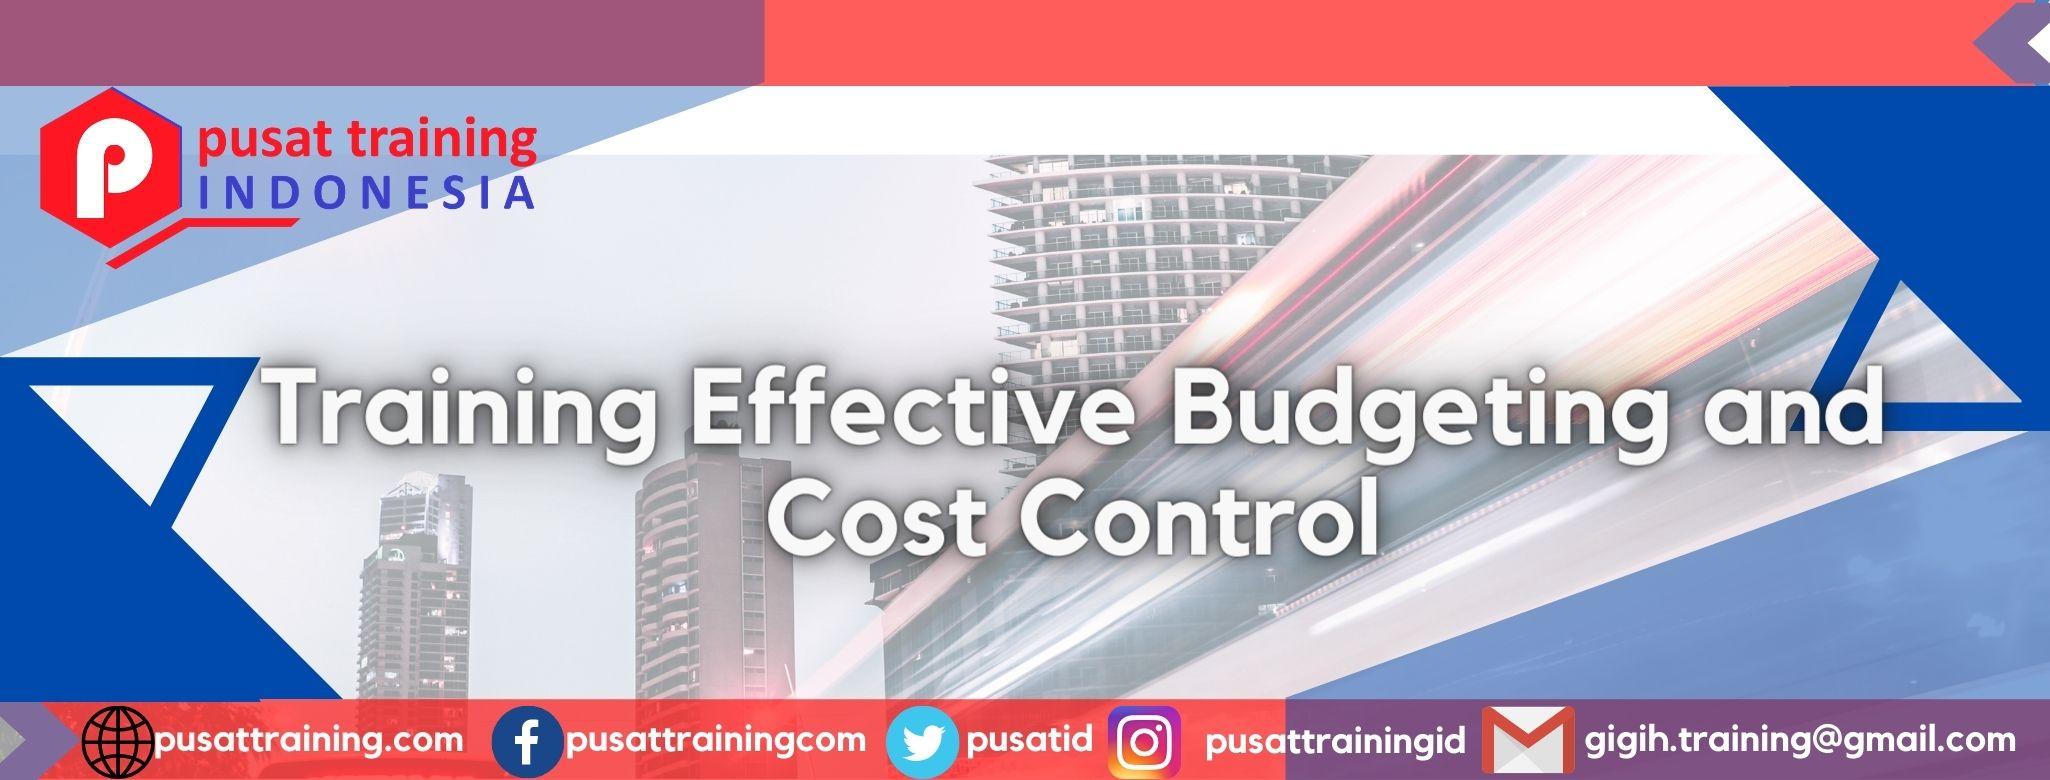 Training-Effective-Budgeting-and-Cost-Control